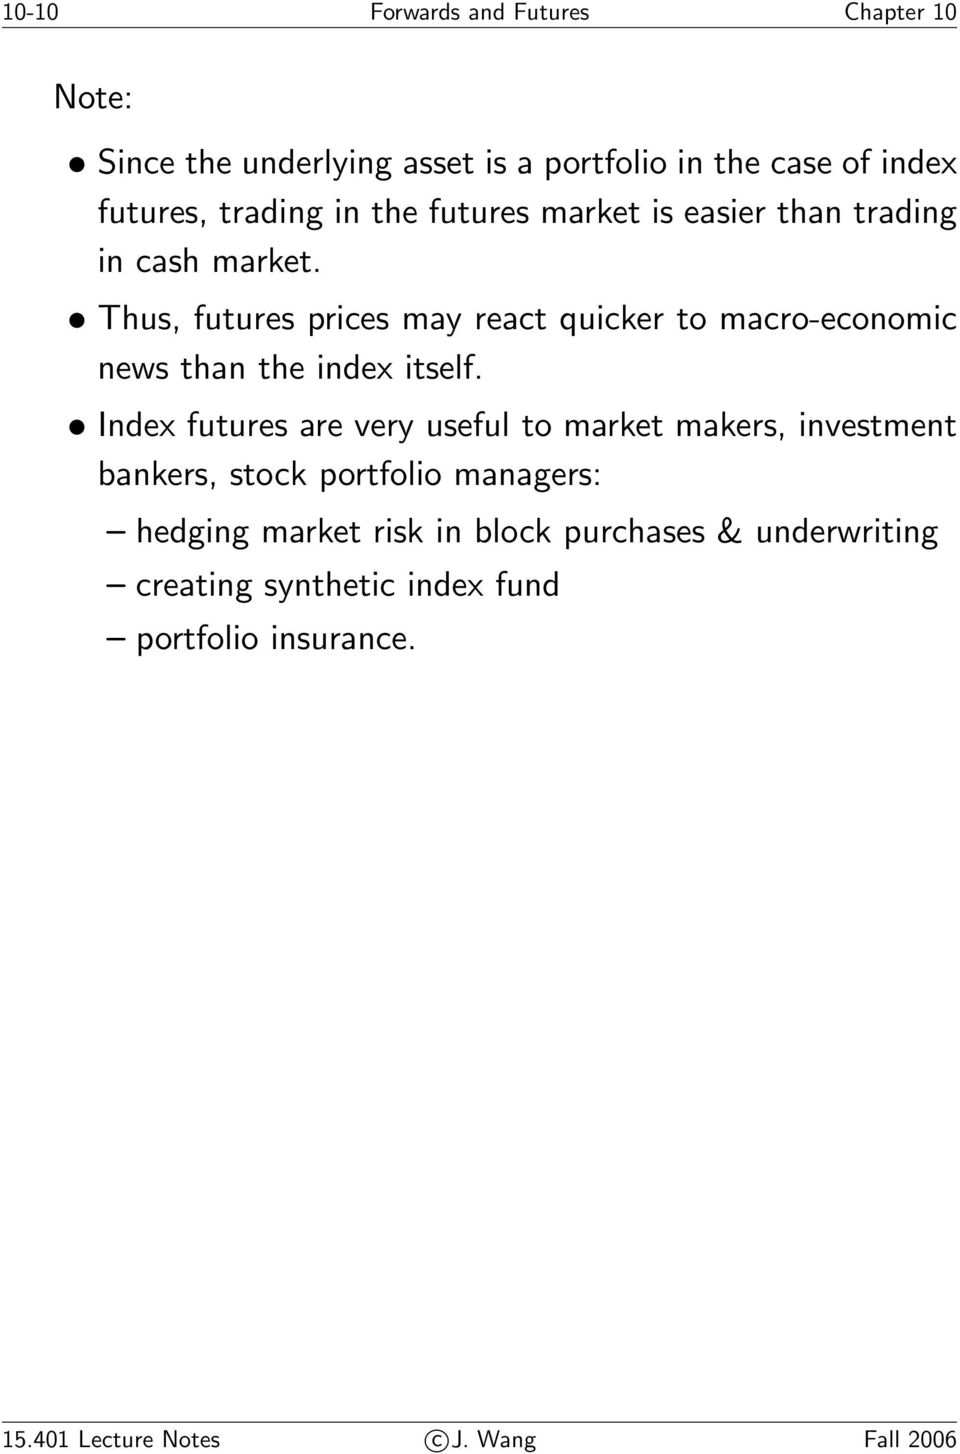 Thus, futures prices may react quicker to macro-economic news than the index itself.